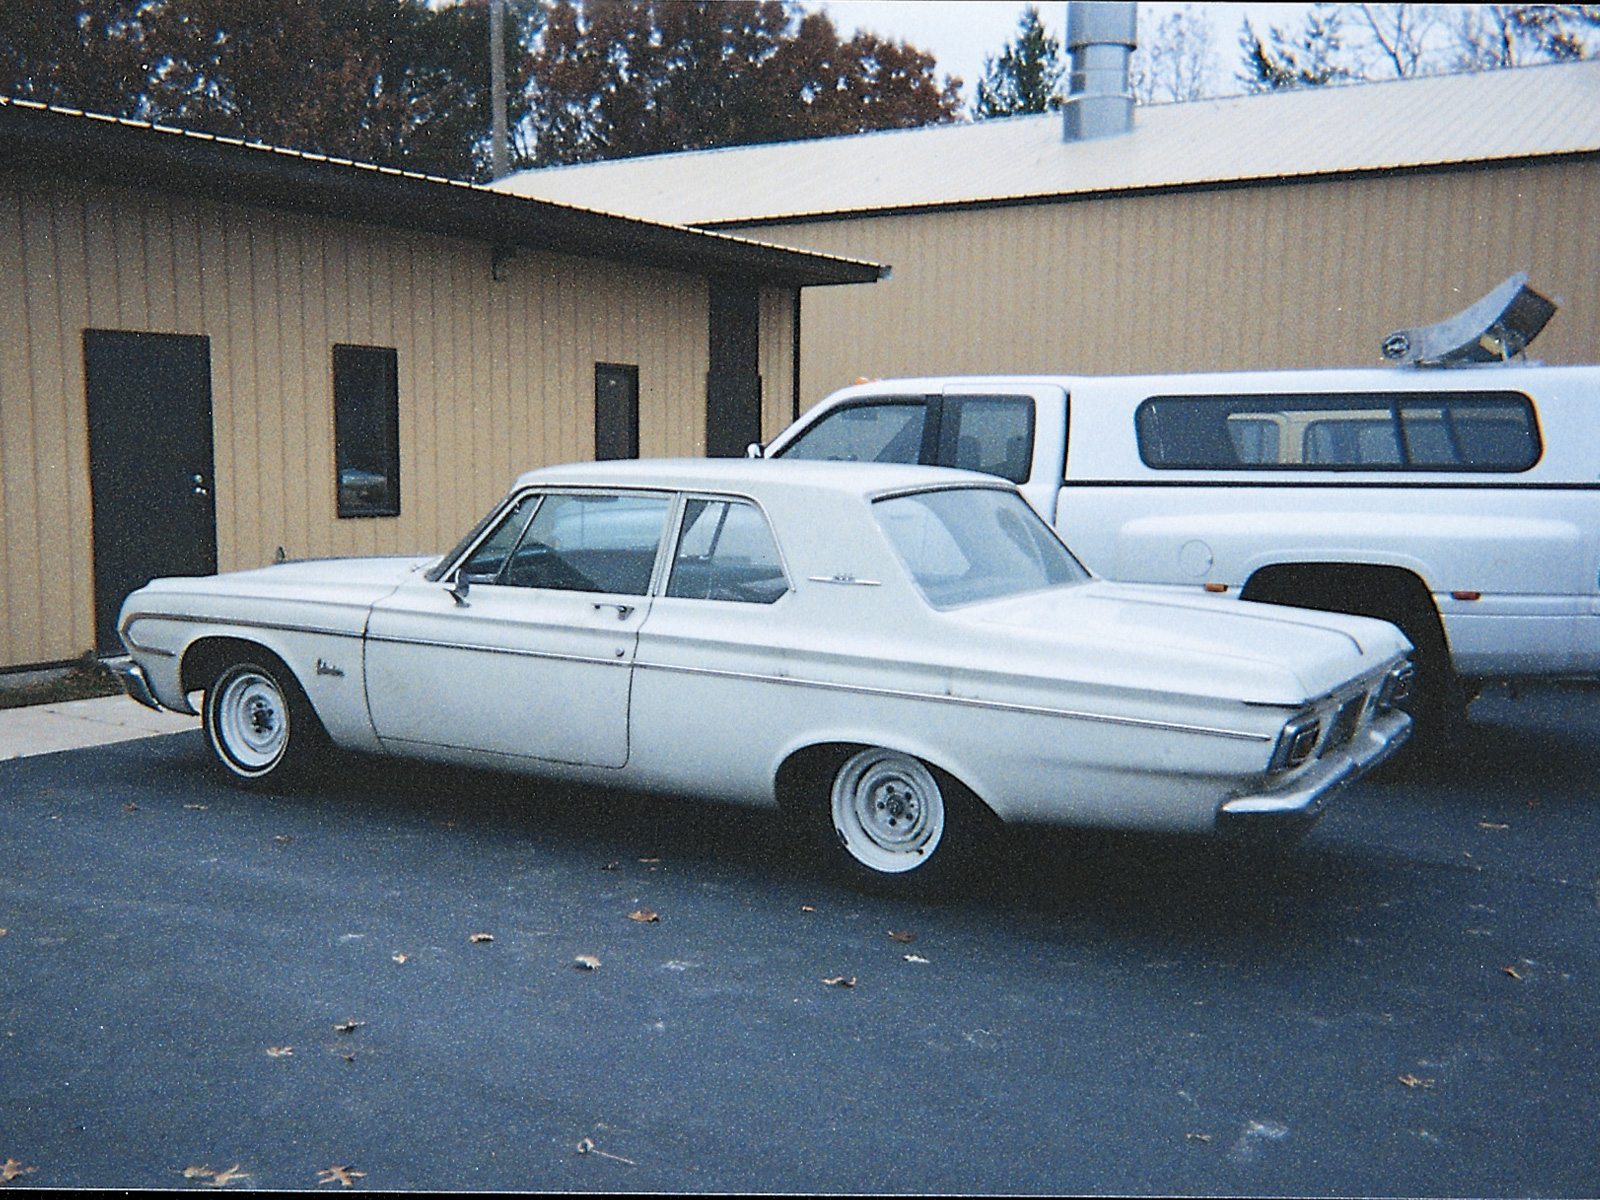 Amazing 1964 Plymouth Belvedere Pictures & Backgrounds